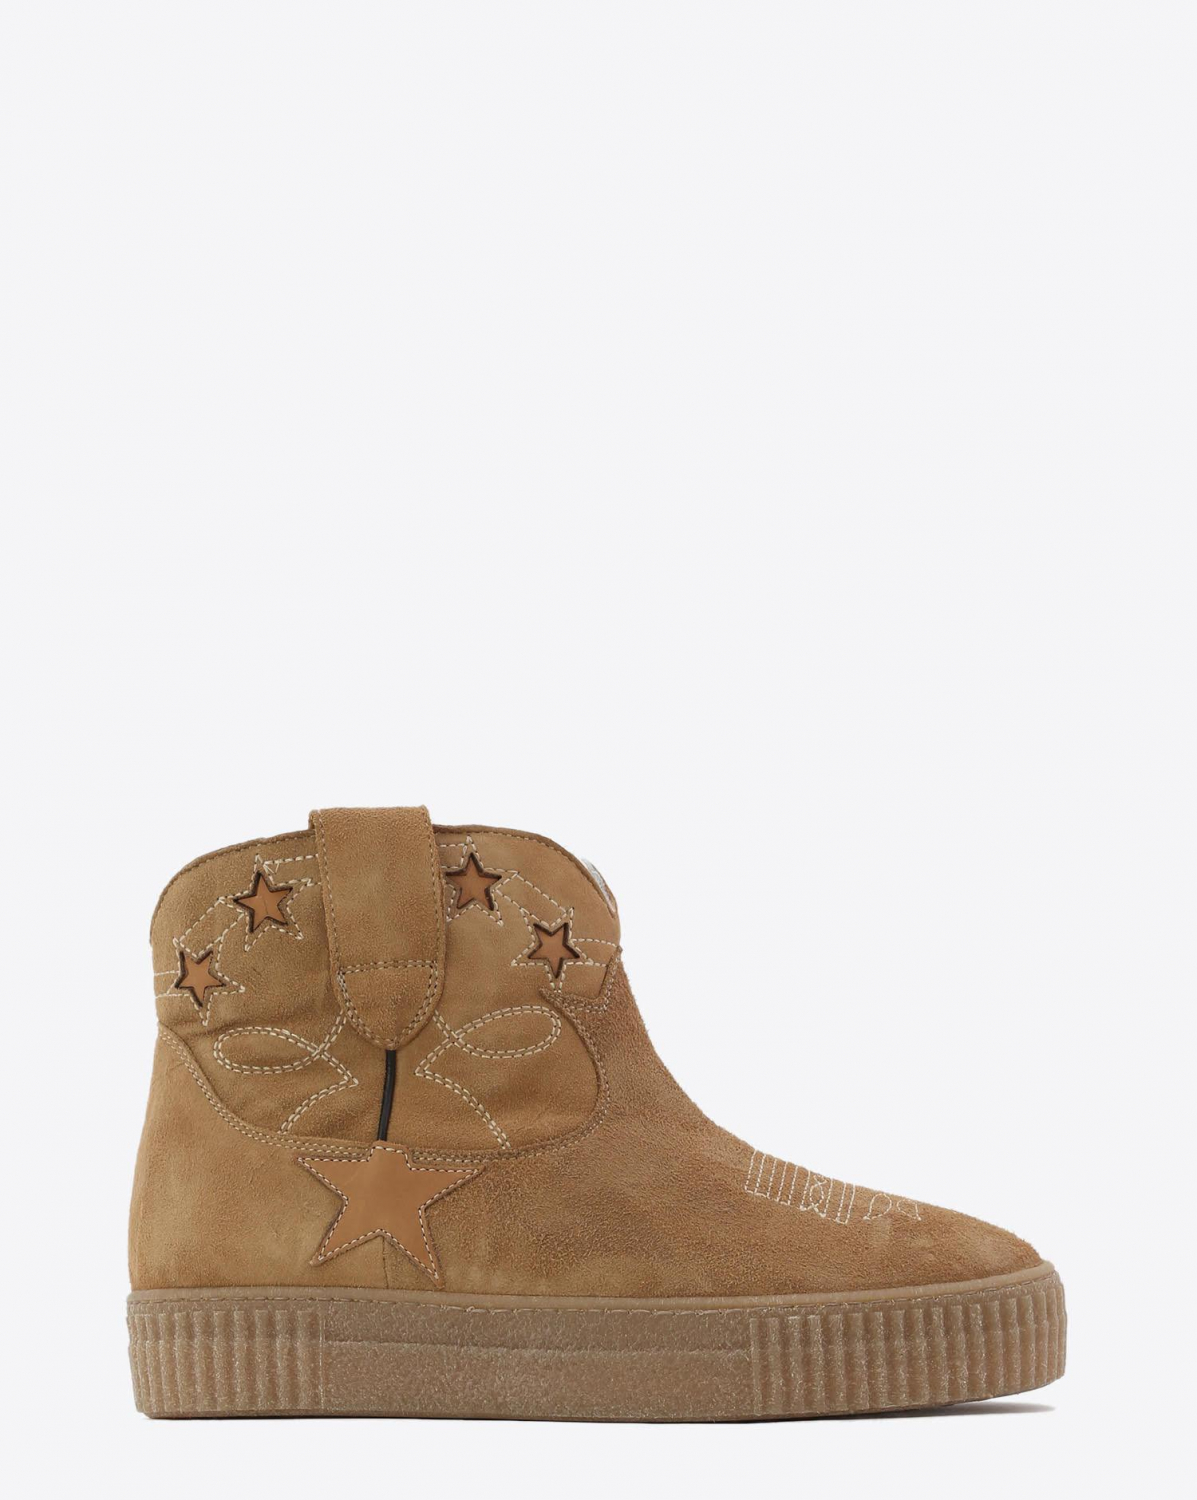 Golden Goose Woman Chaussures Collection Boots Sneak Slow - Camel Suede Shearling